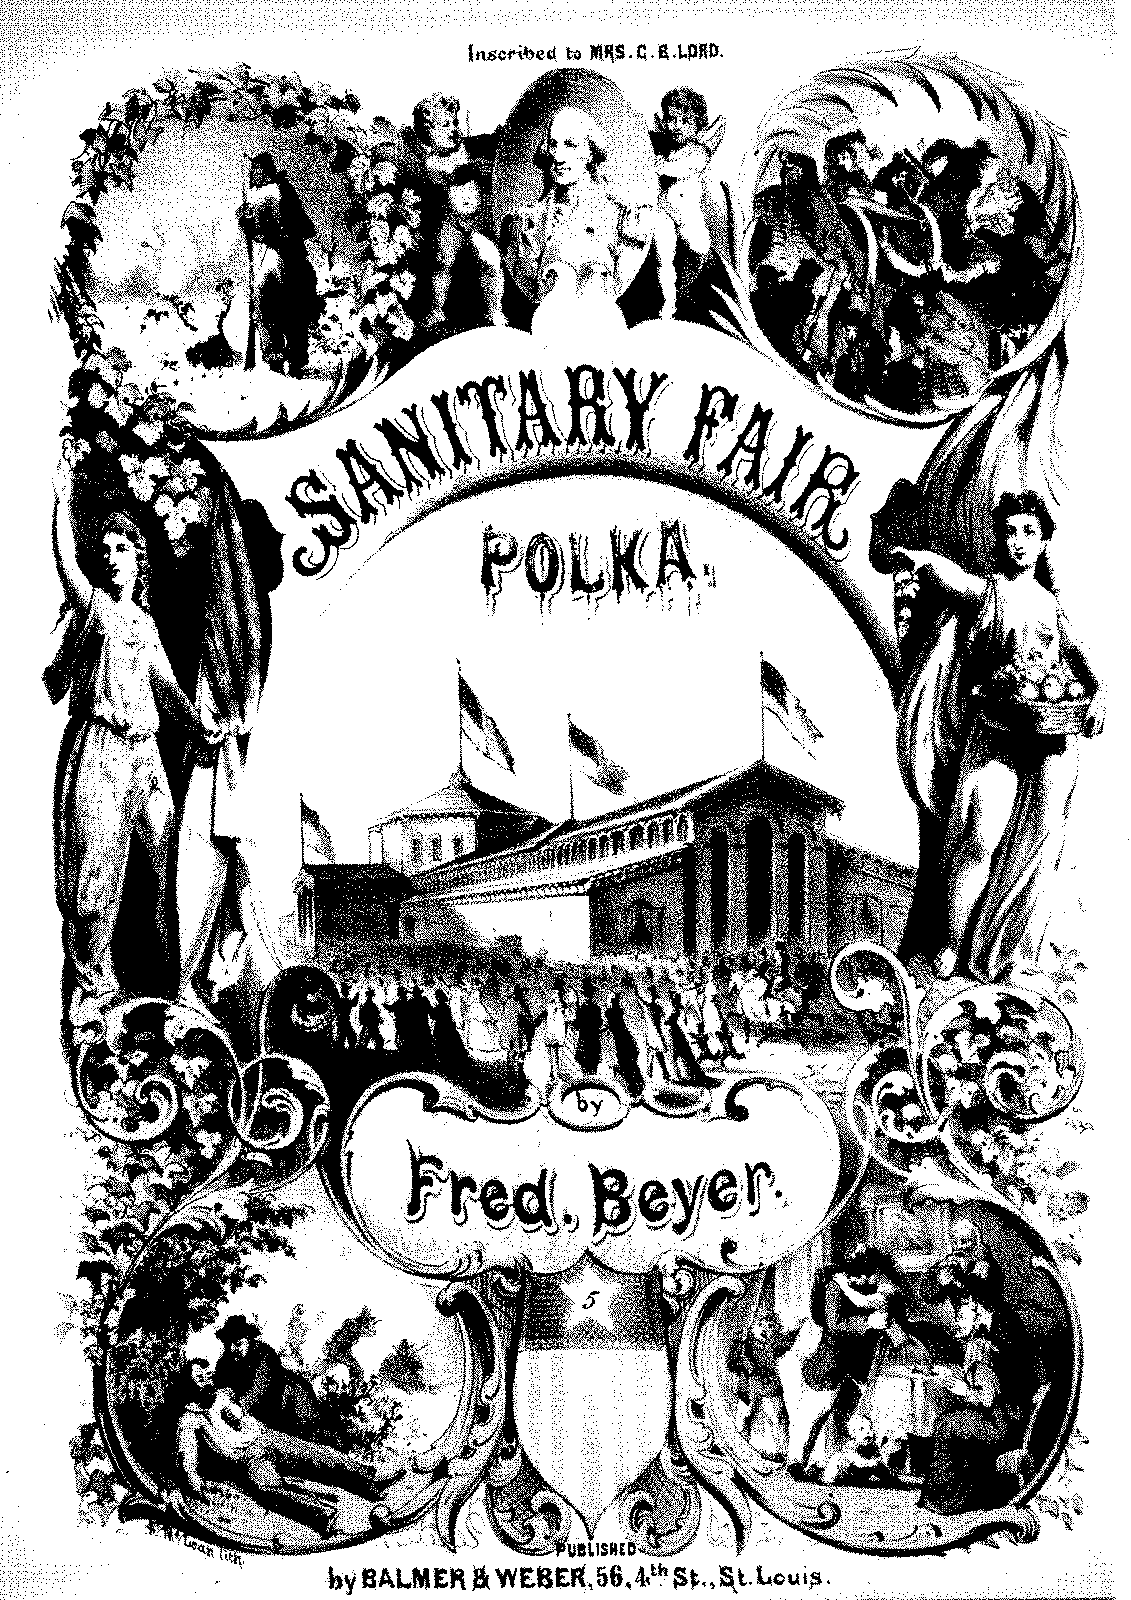 PMLP334847-Beyer - Sanitary Fair Polka.PDF